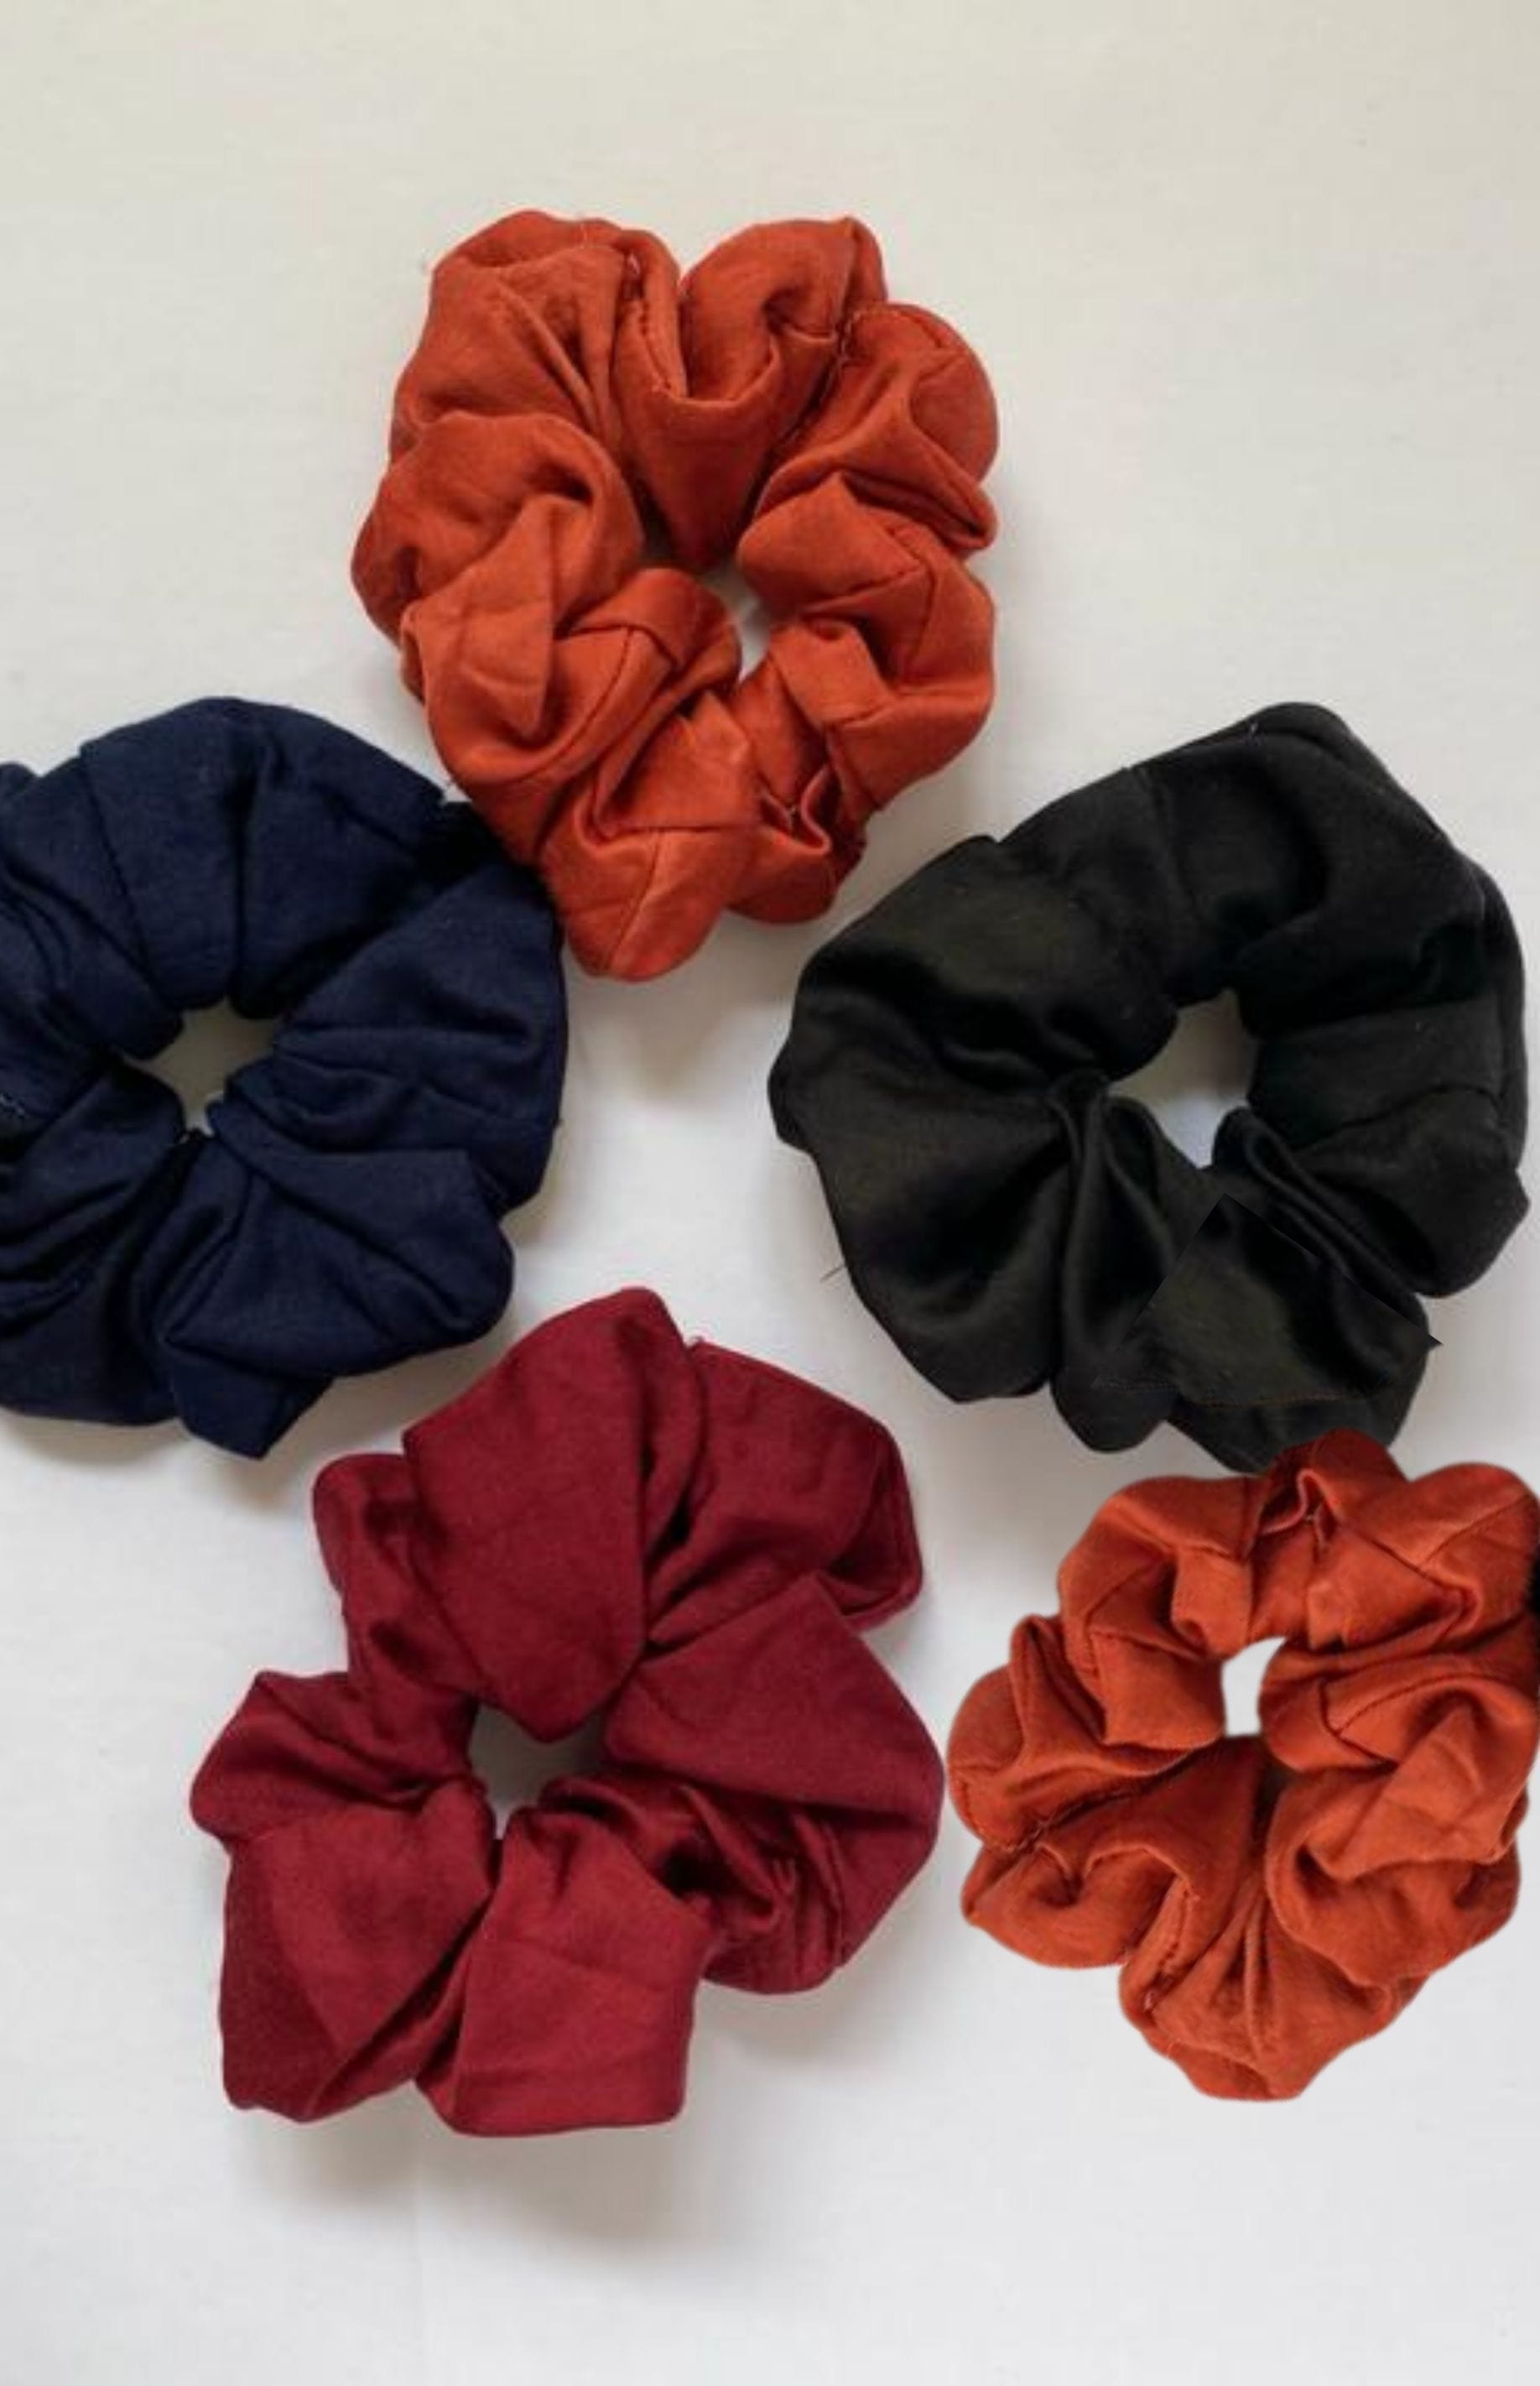 SET OF 3 or 5 SATIN SCRUNCHIES